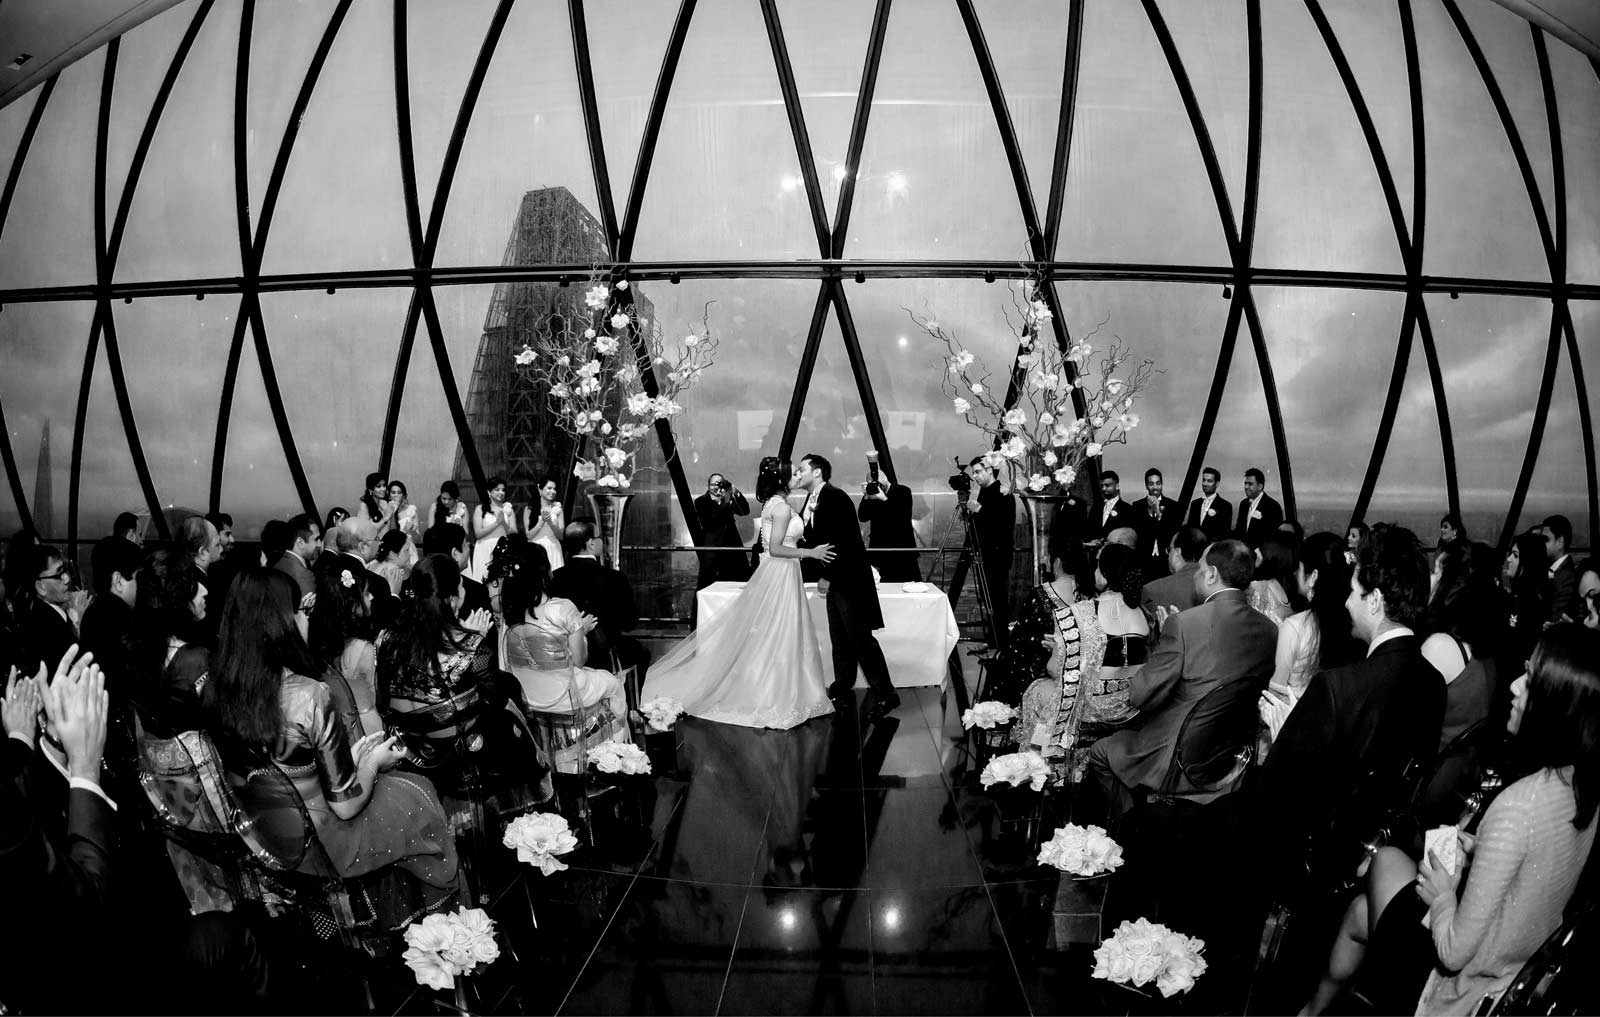 London Gherkin wedding kiss black and white image